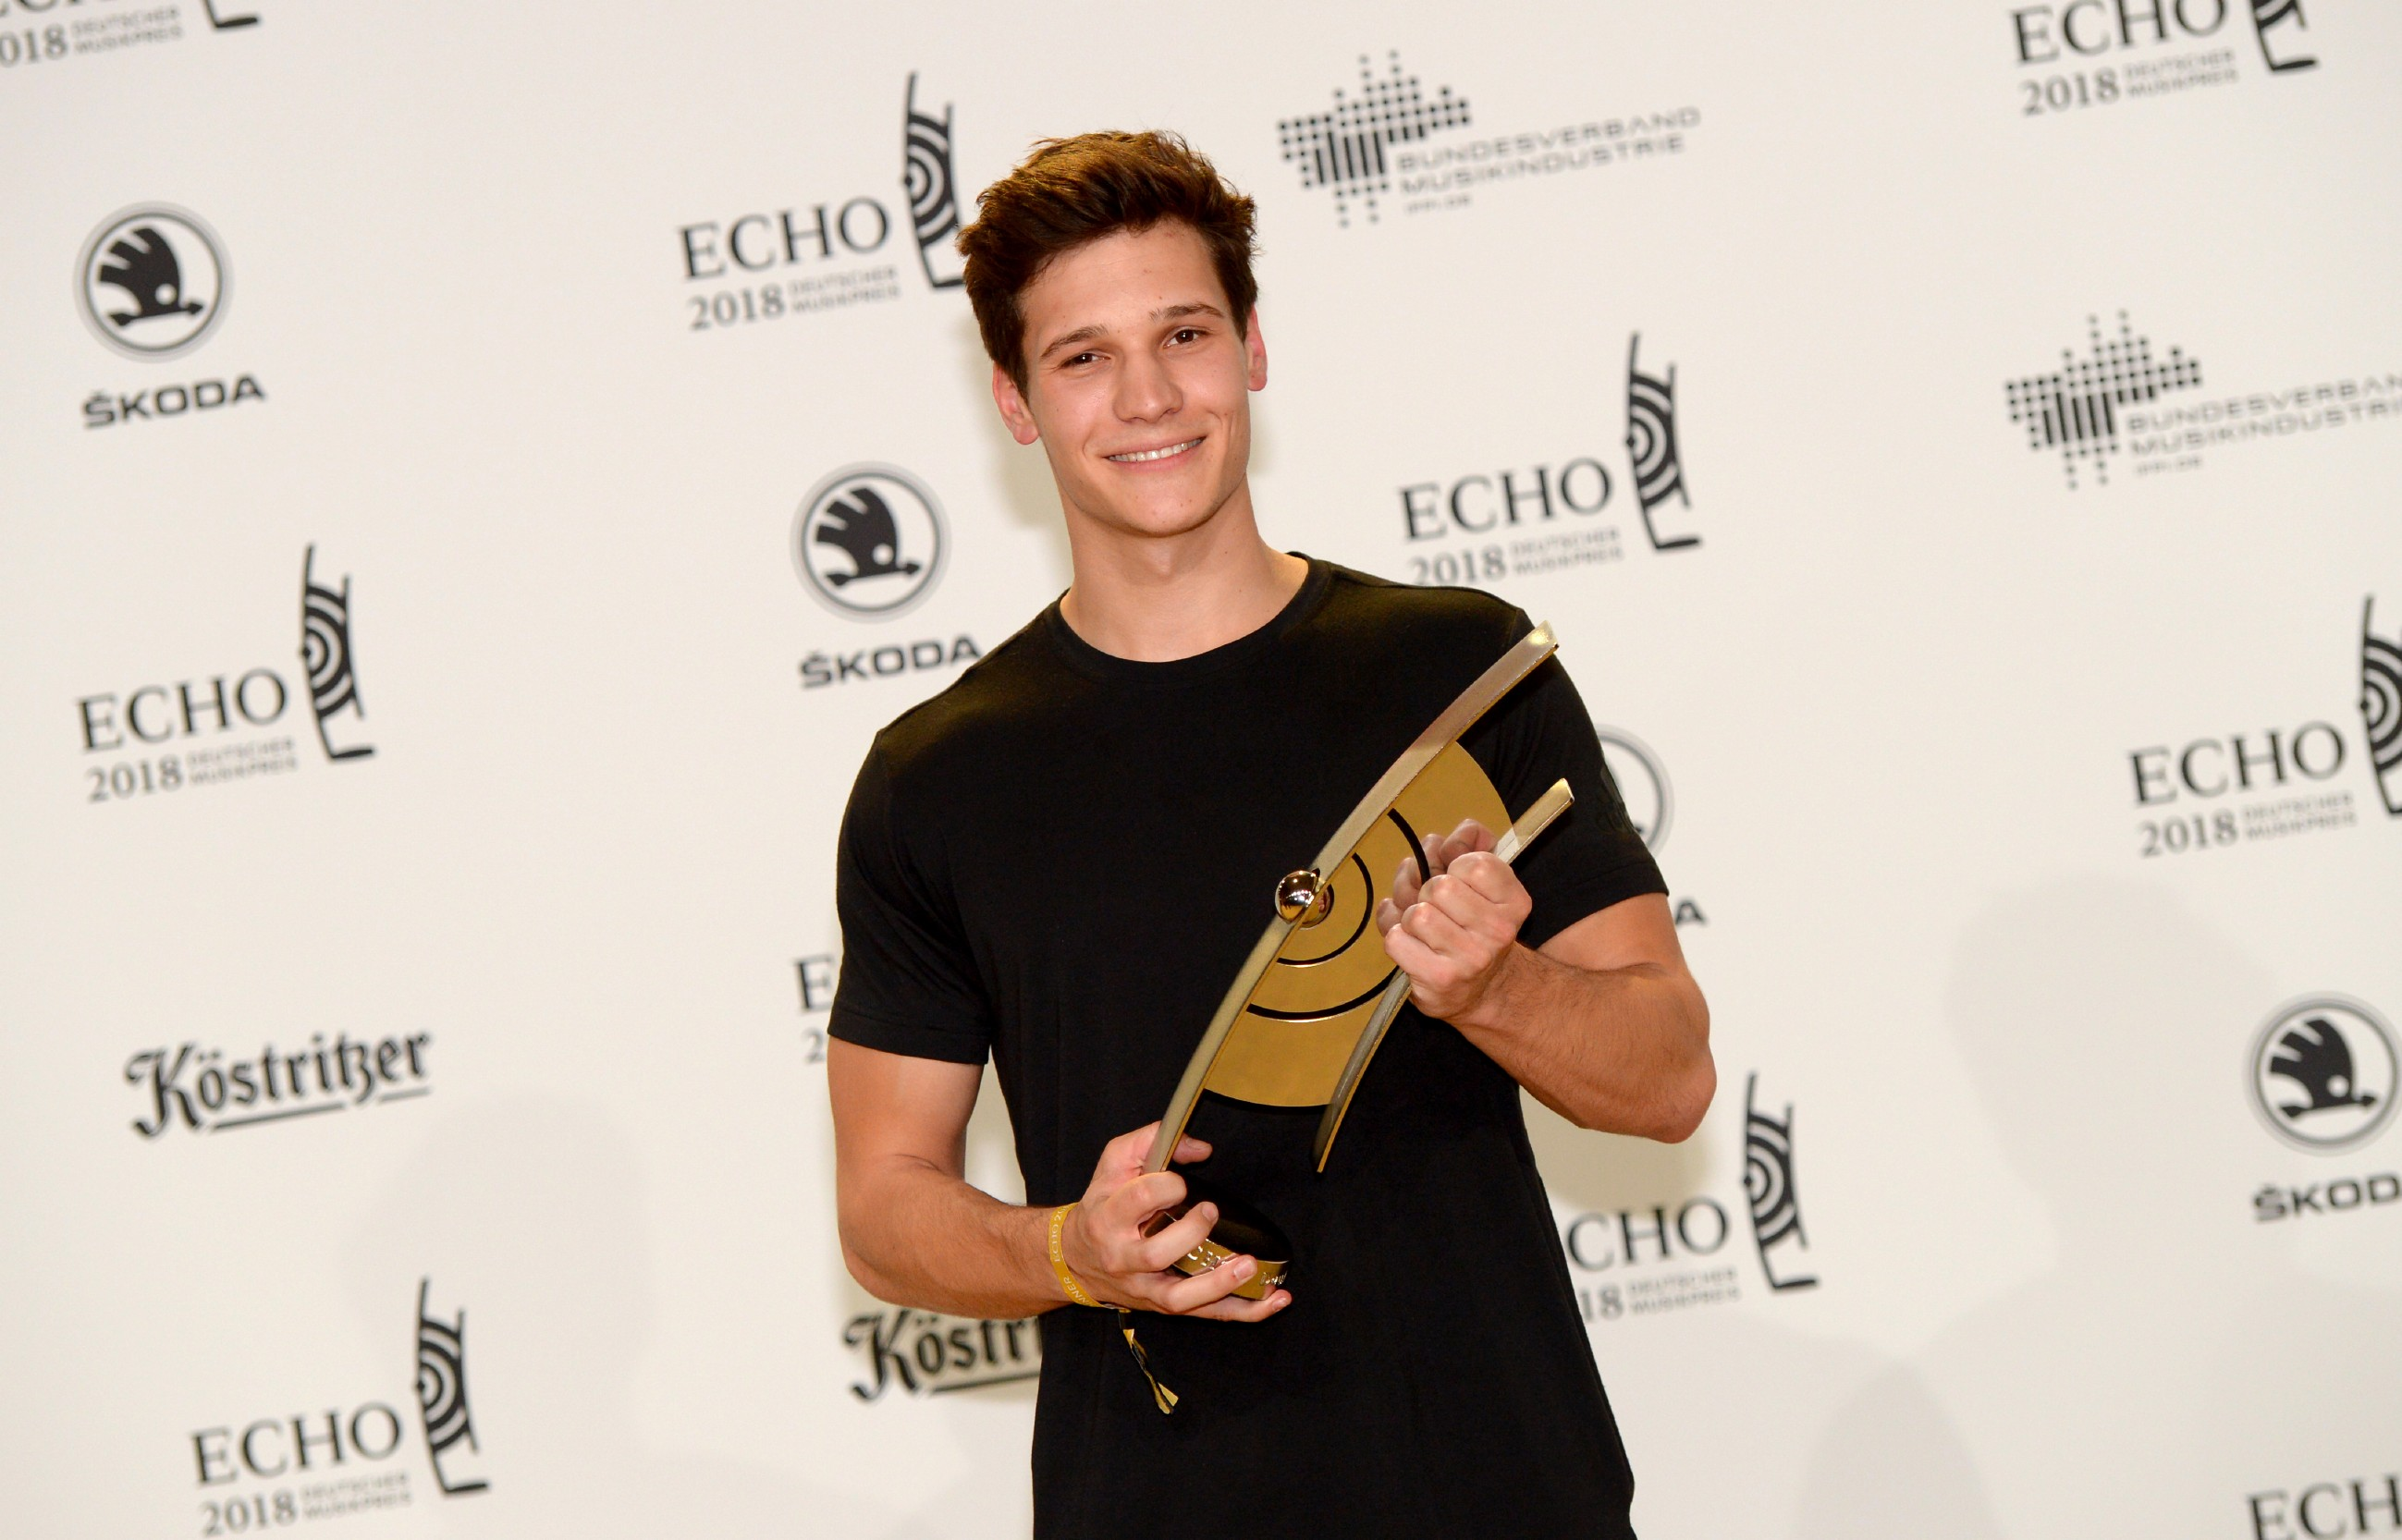 Echo 2018 Wincent Weiss Stars On Tv